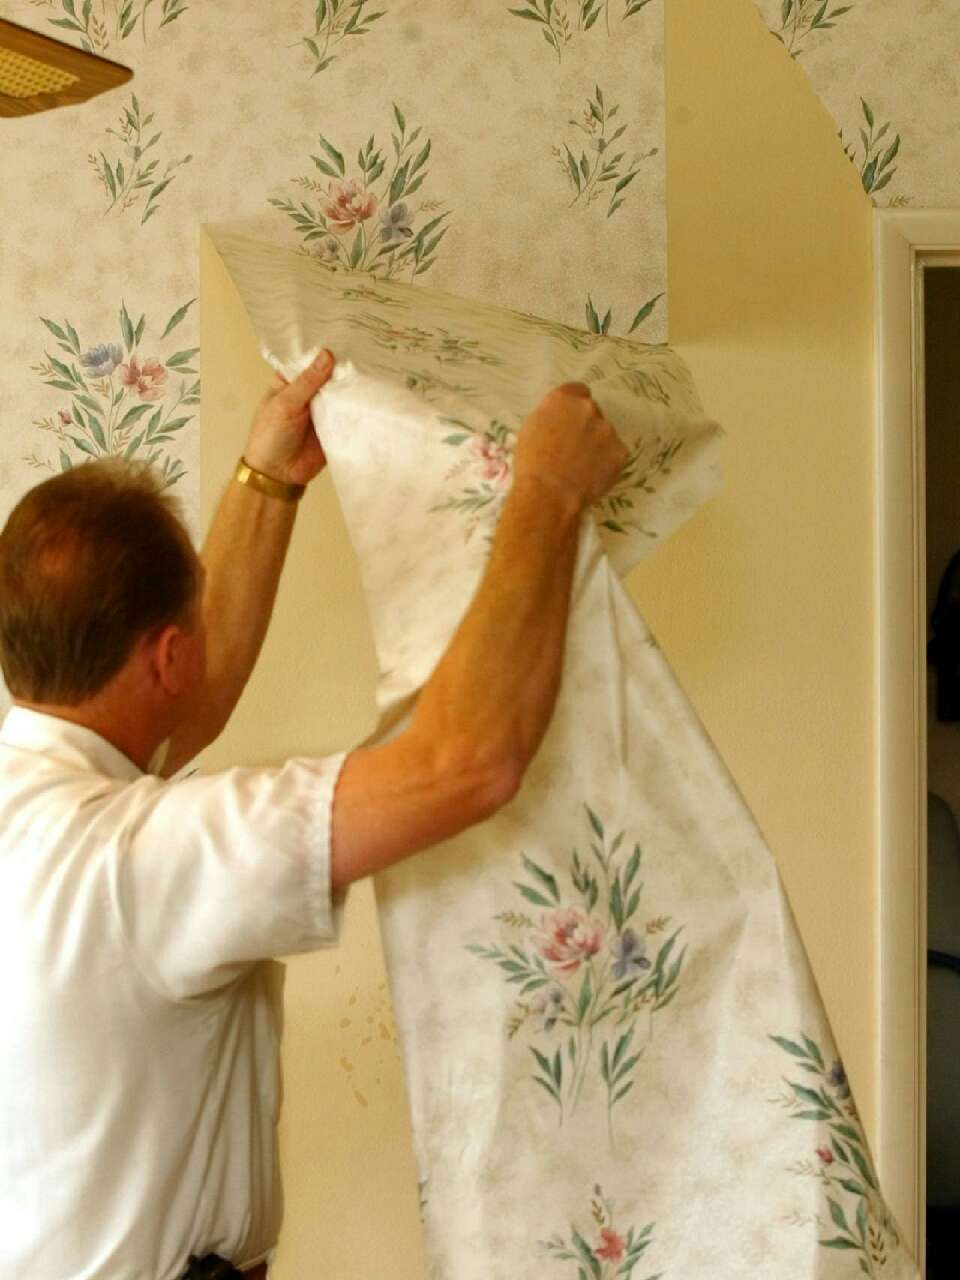 Peel the top layer of the wall paper off leaving the backing stuck to the wall.